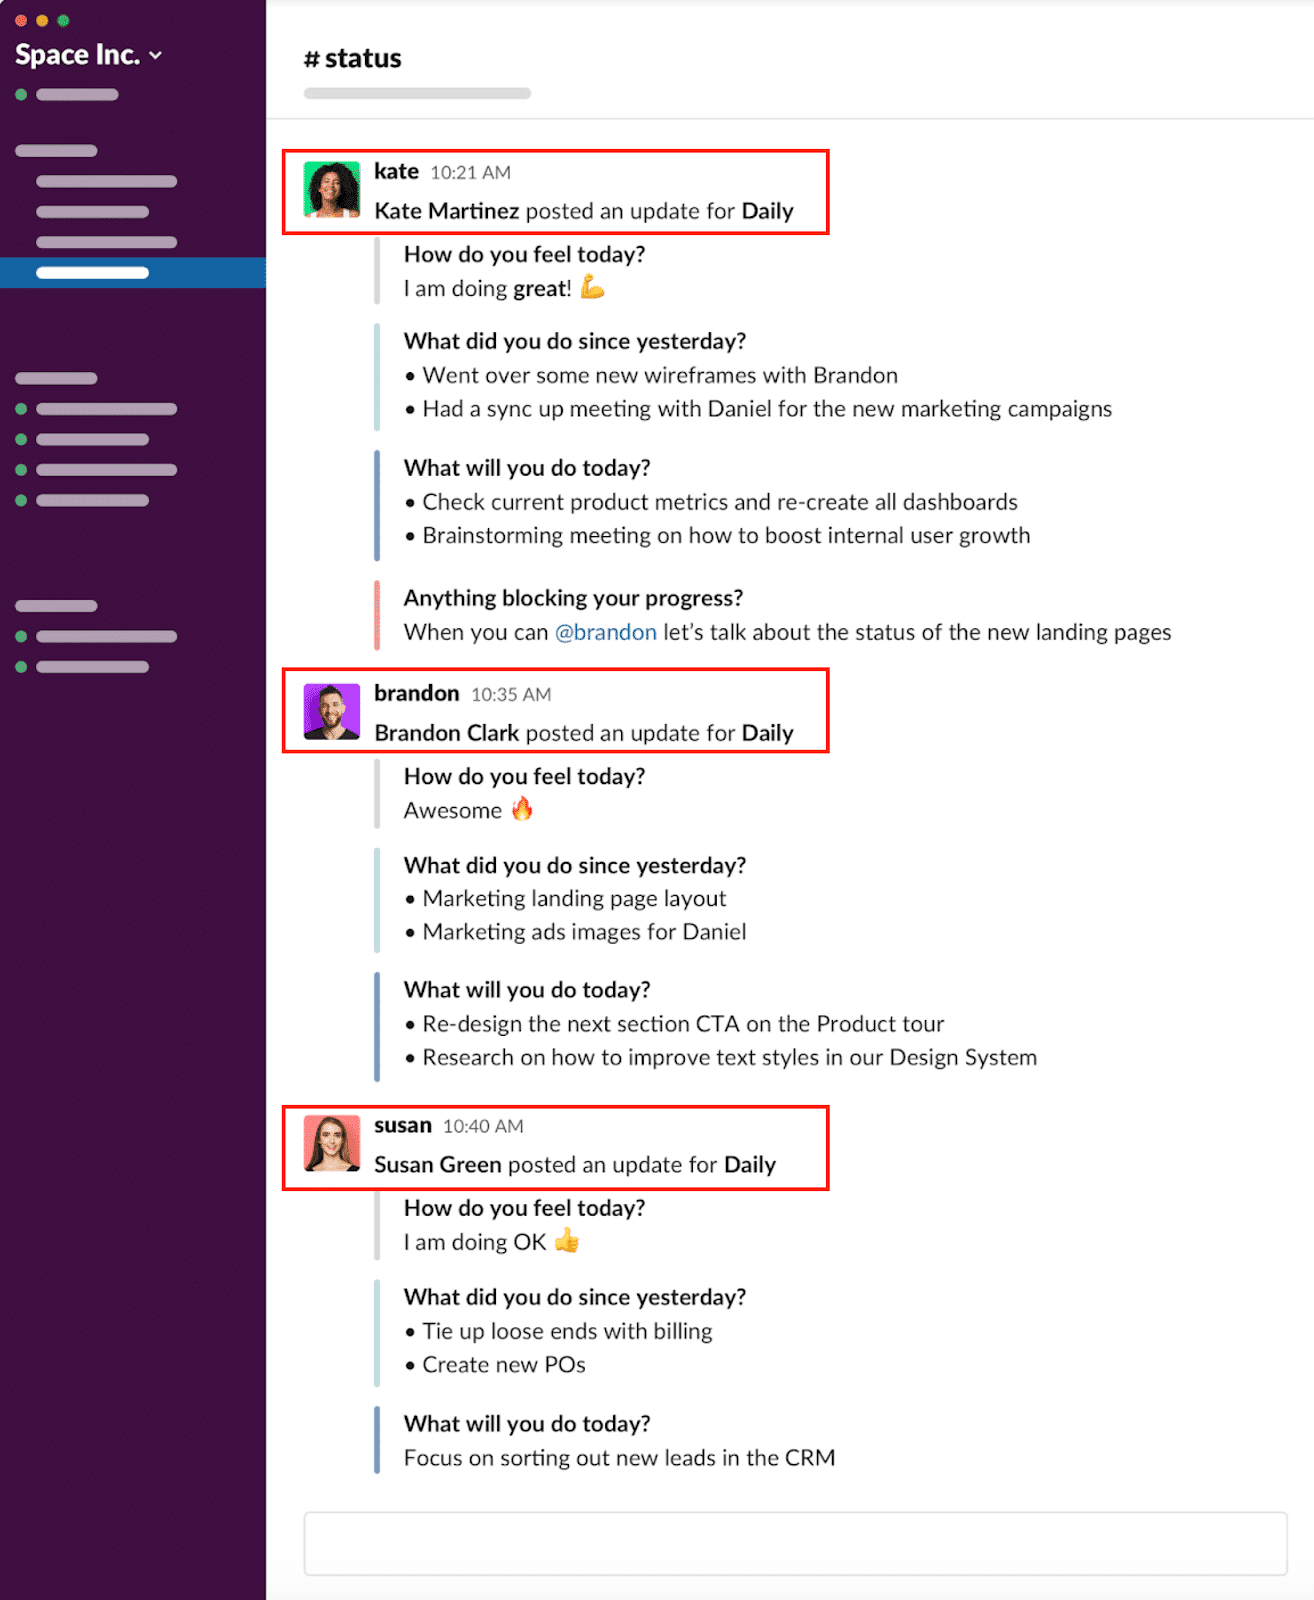 Updates are automatically posted in a public slack channel for all team members to see and respond to if applicable.